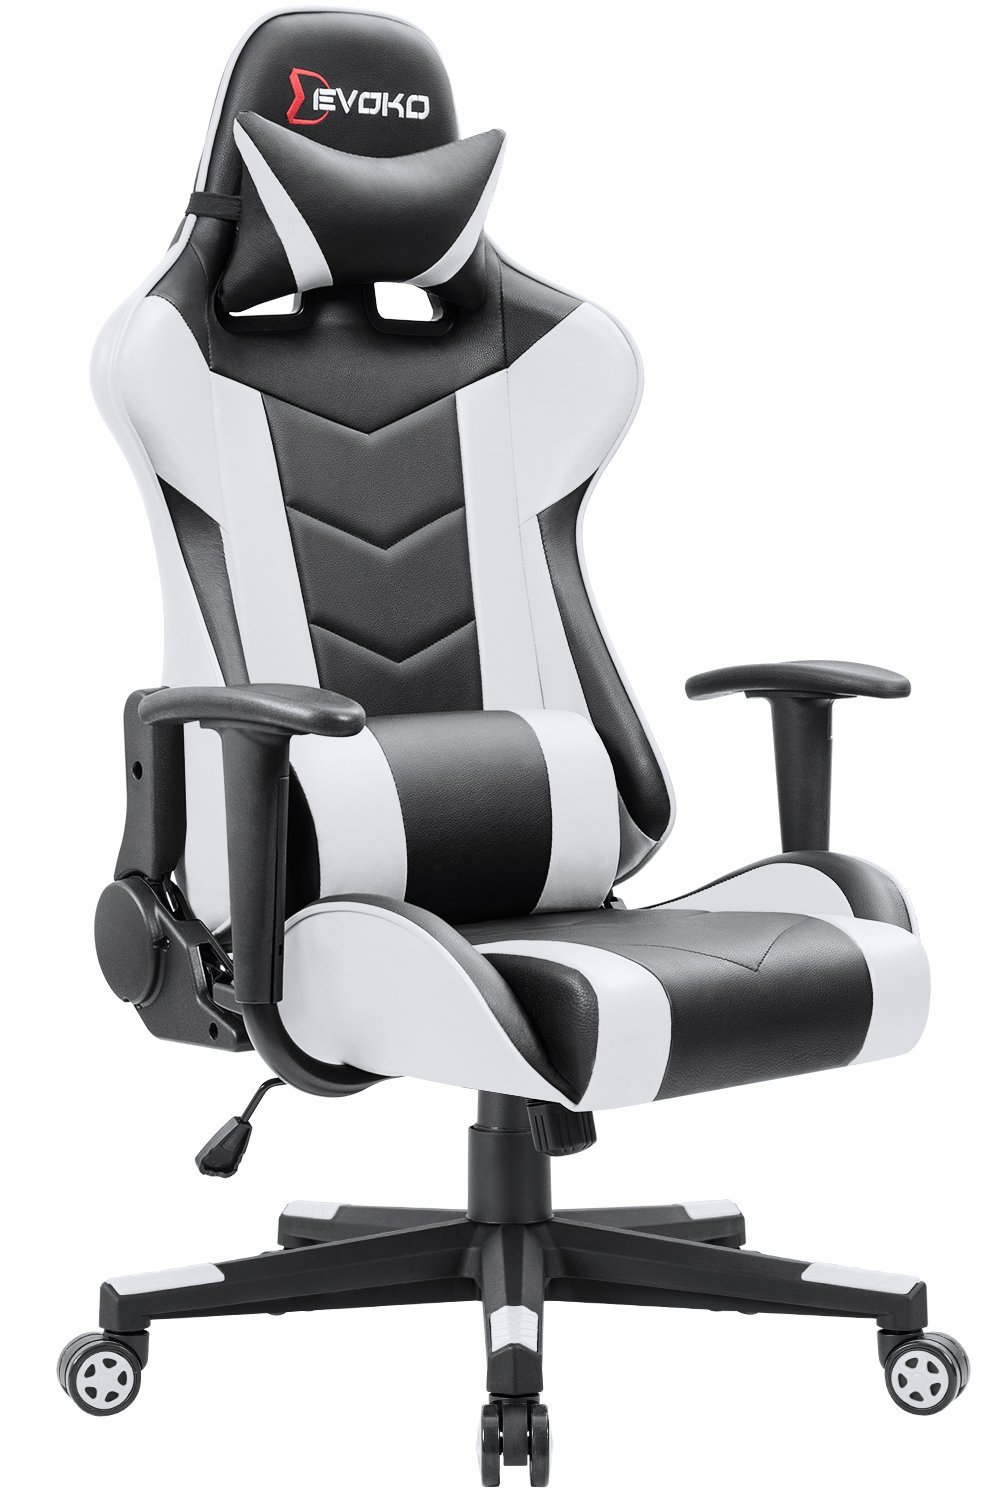 Devoko Racing Style Ergonomic Chair Review